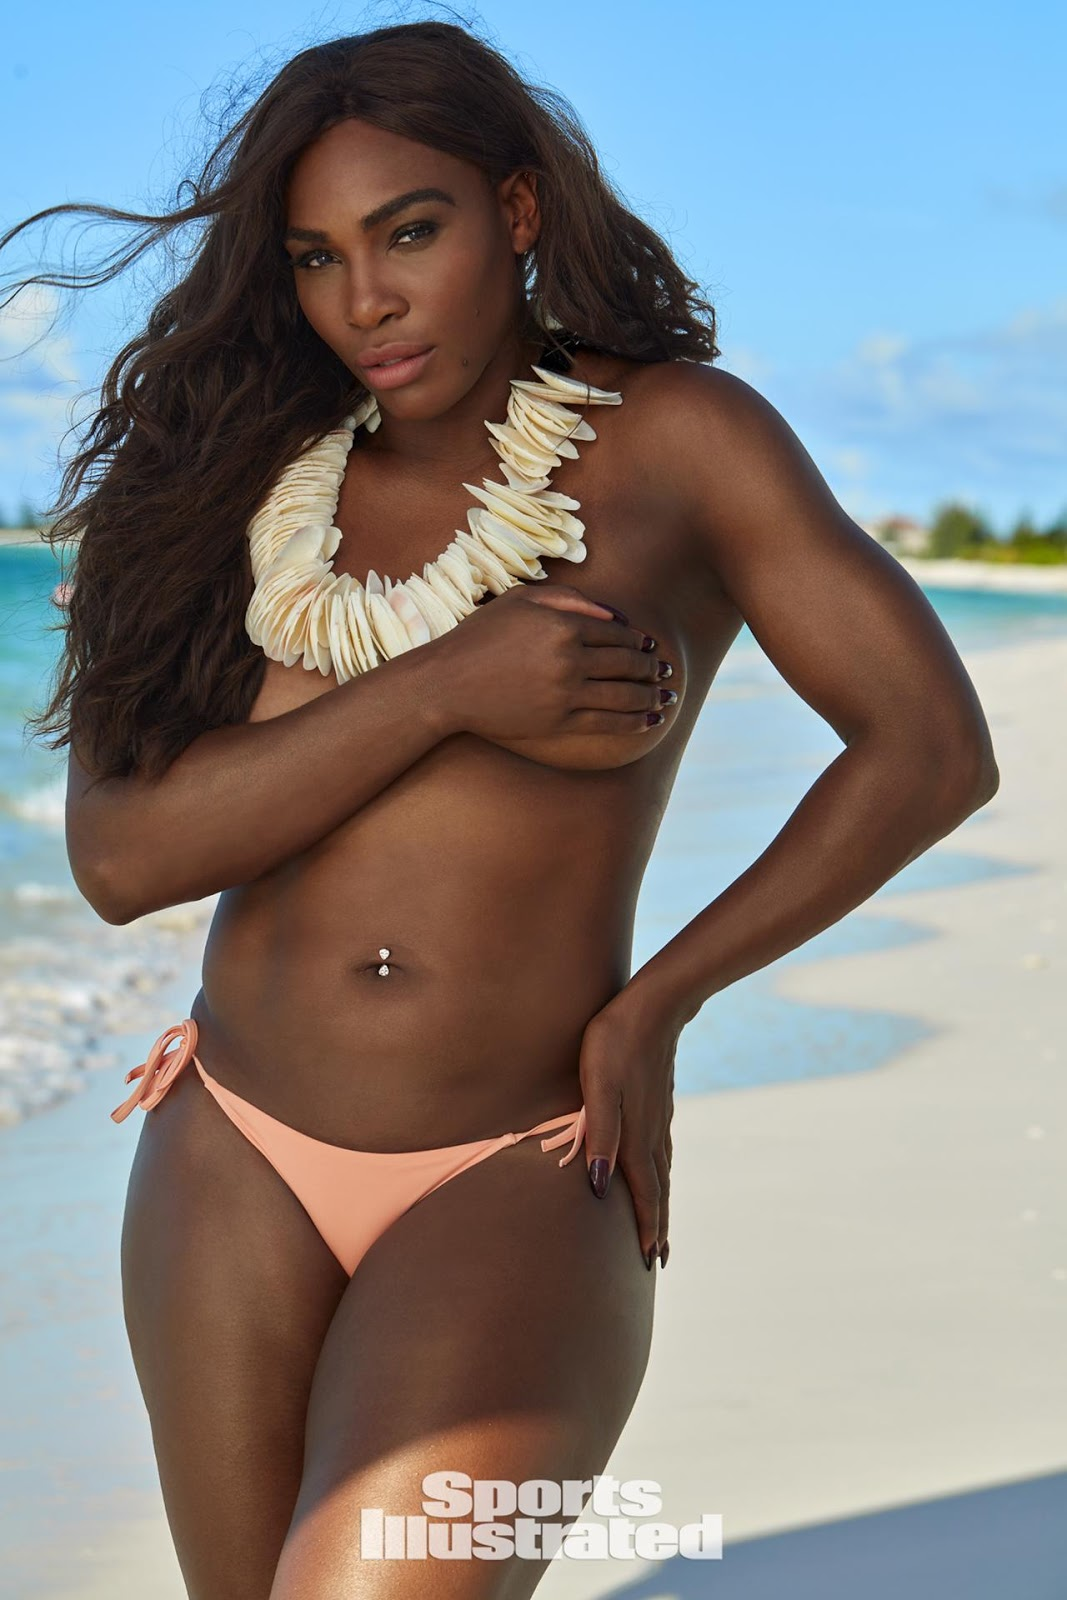 Serena williams sport illustrated swimsuit 2017 8